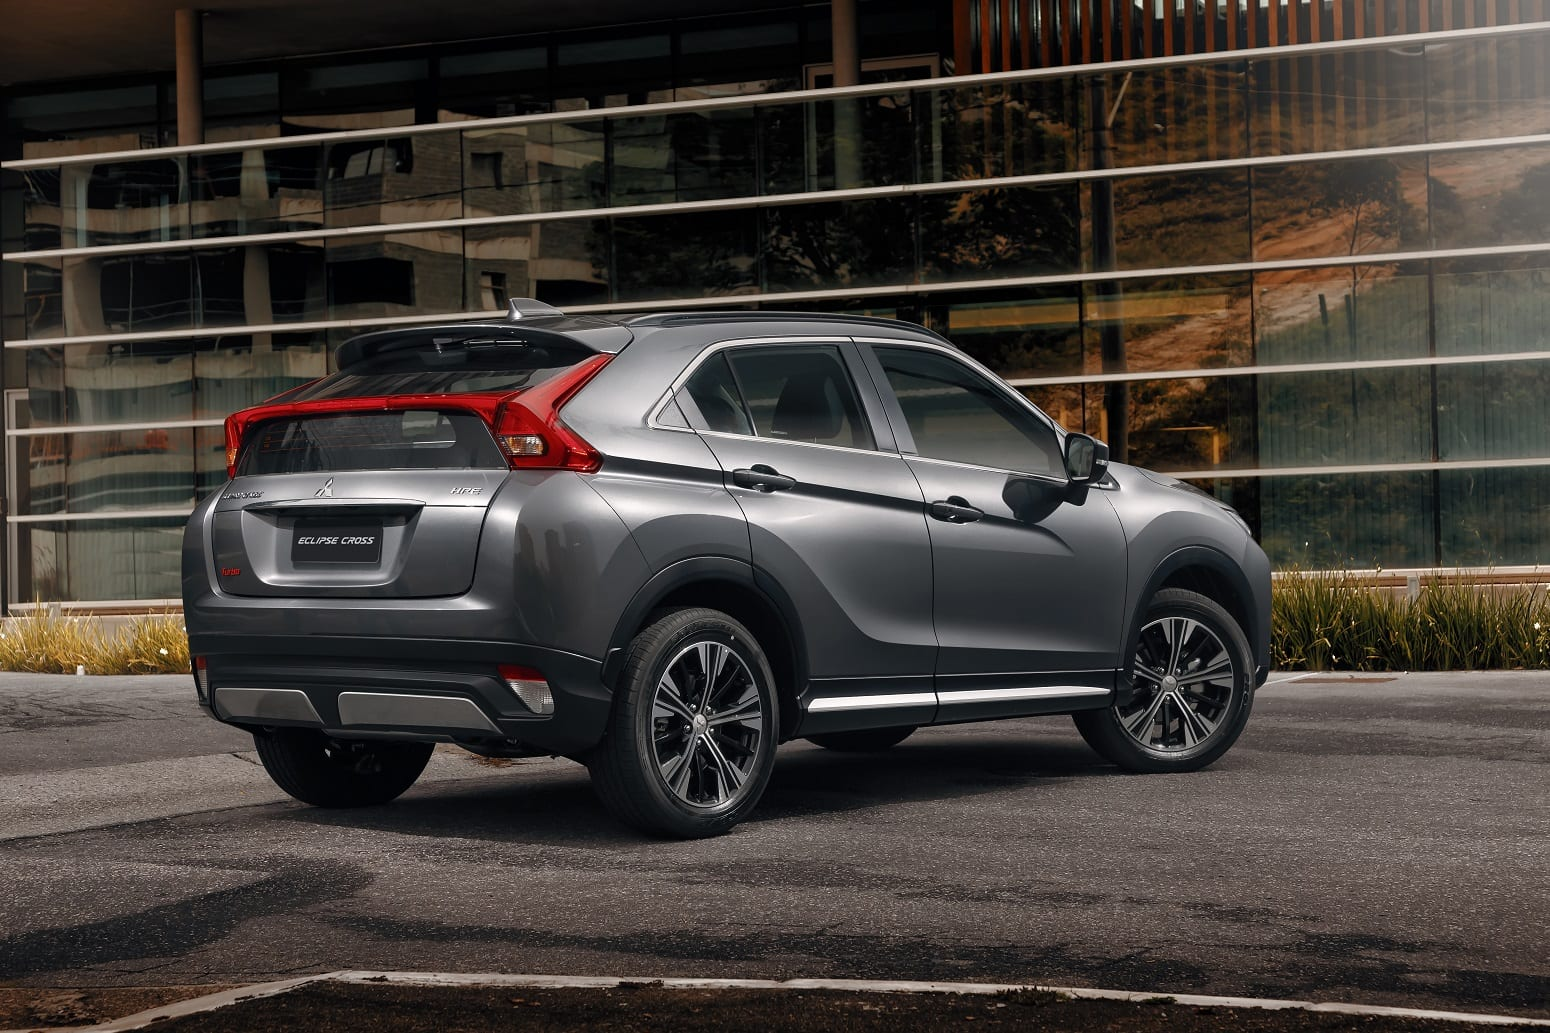 de Mitsubishi Eclipse Cross bij Bennie Wilmink